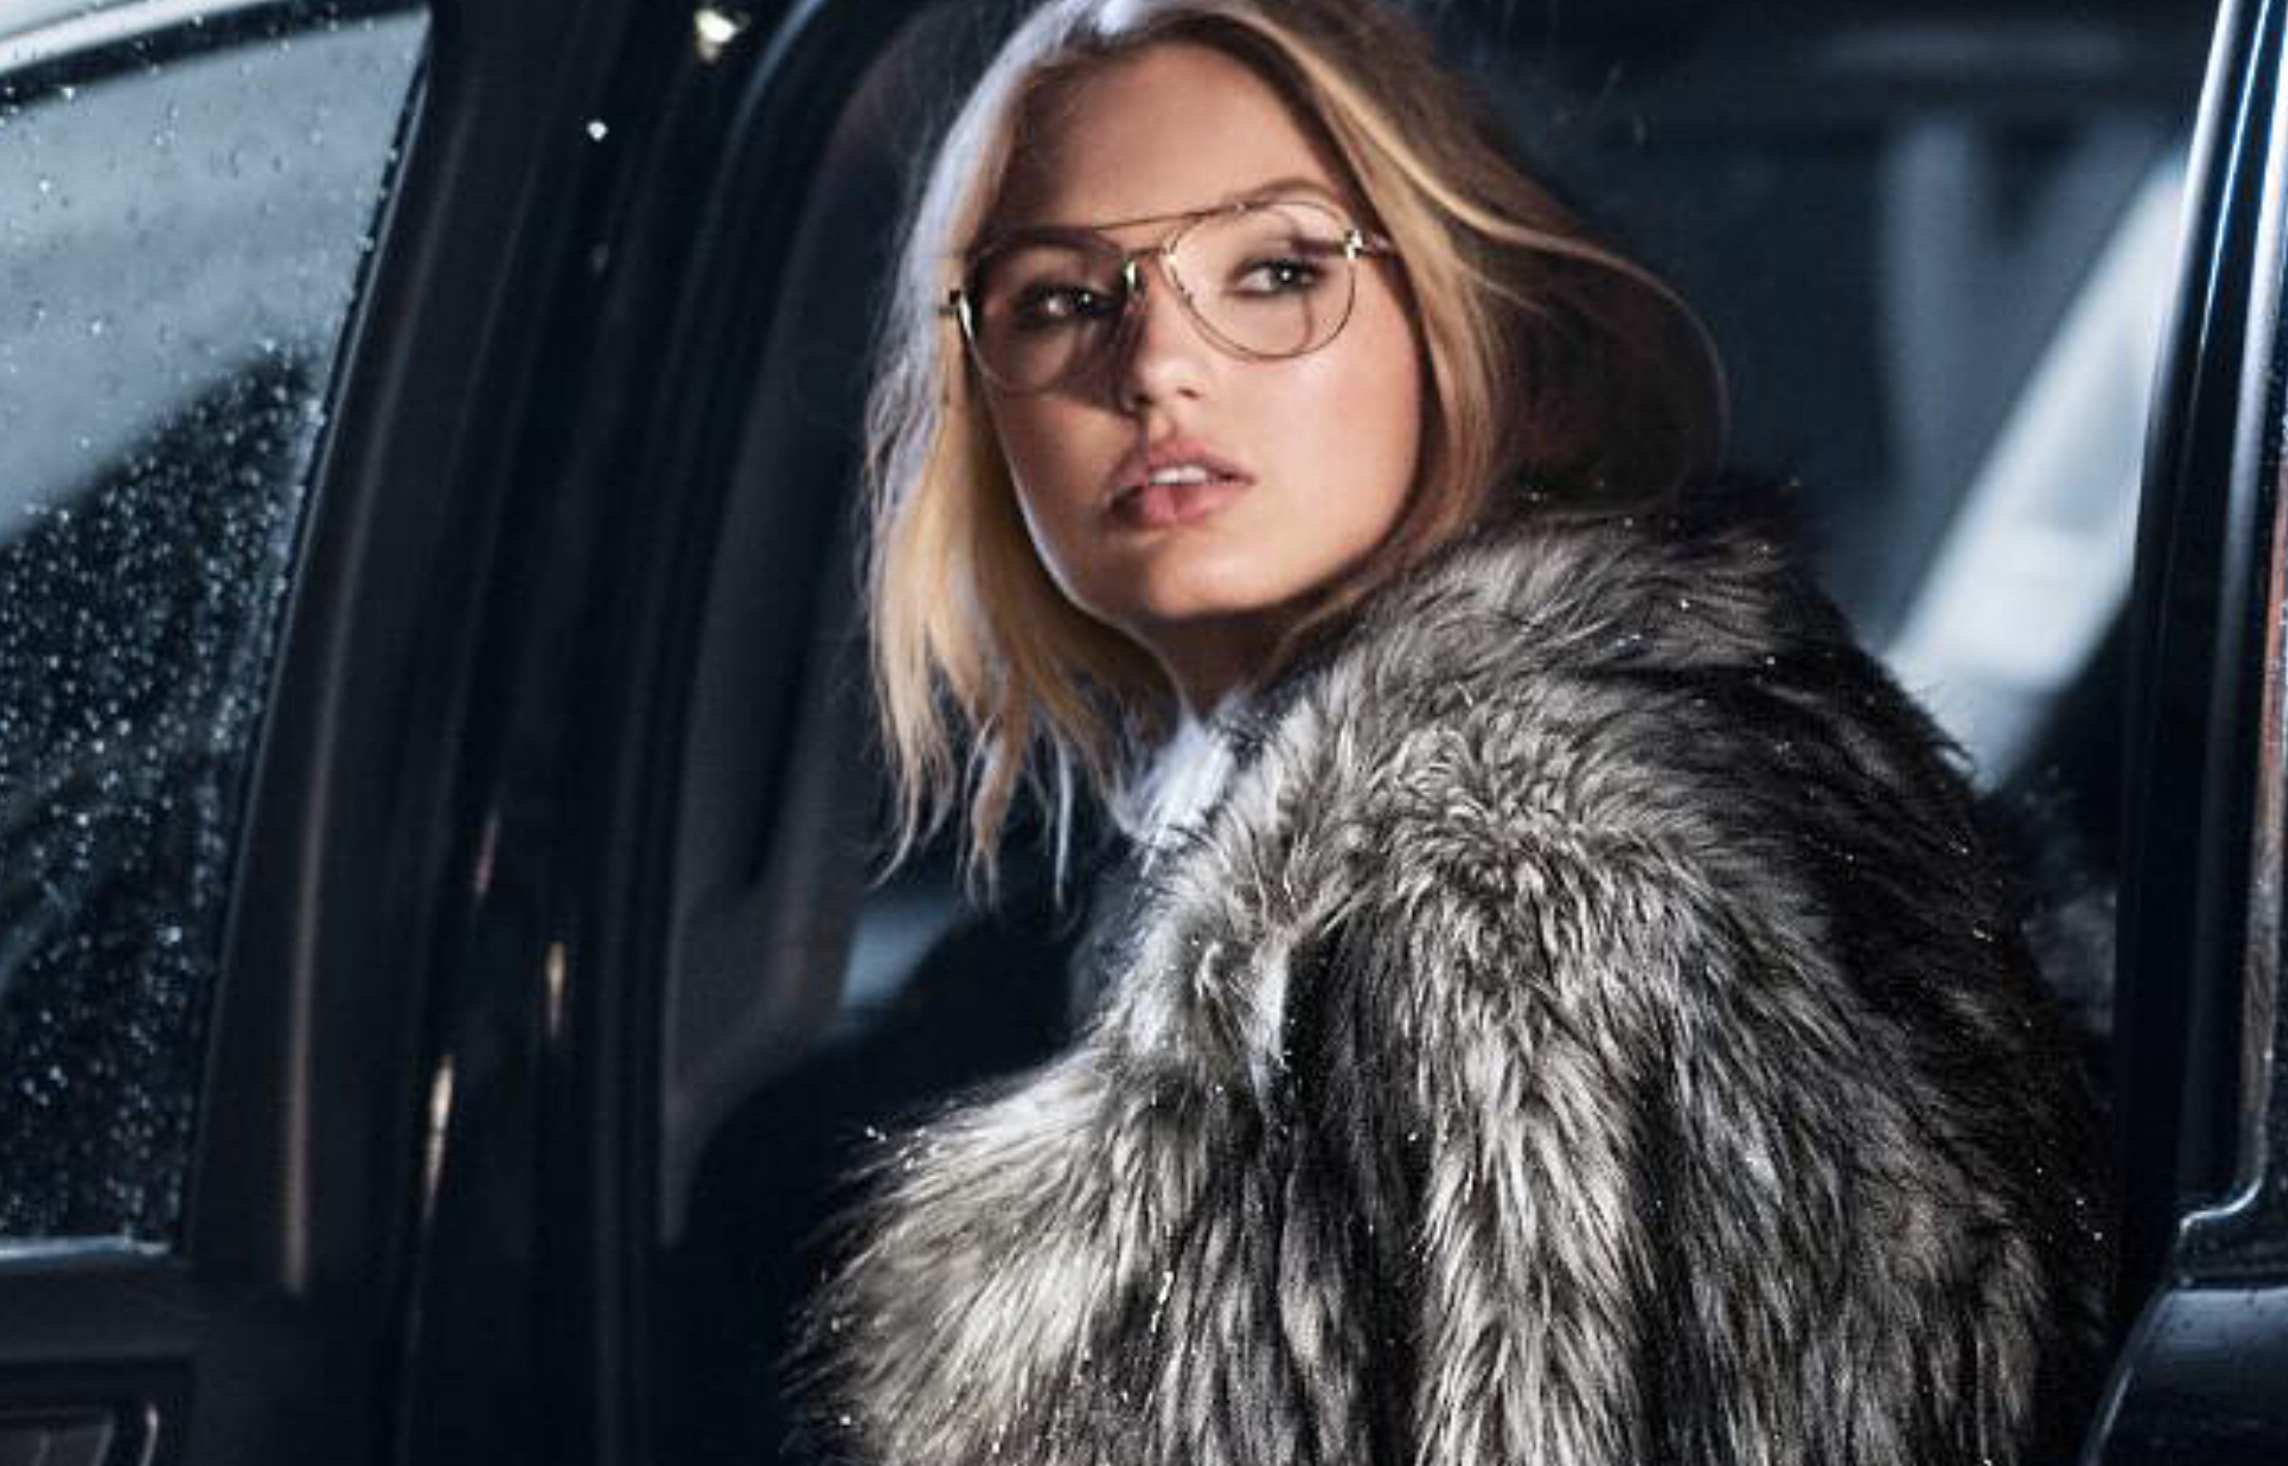 PETA Statement on Michael Kors Going Fur